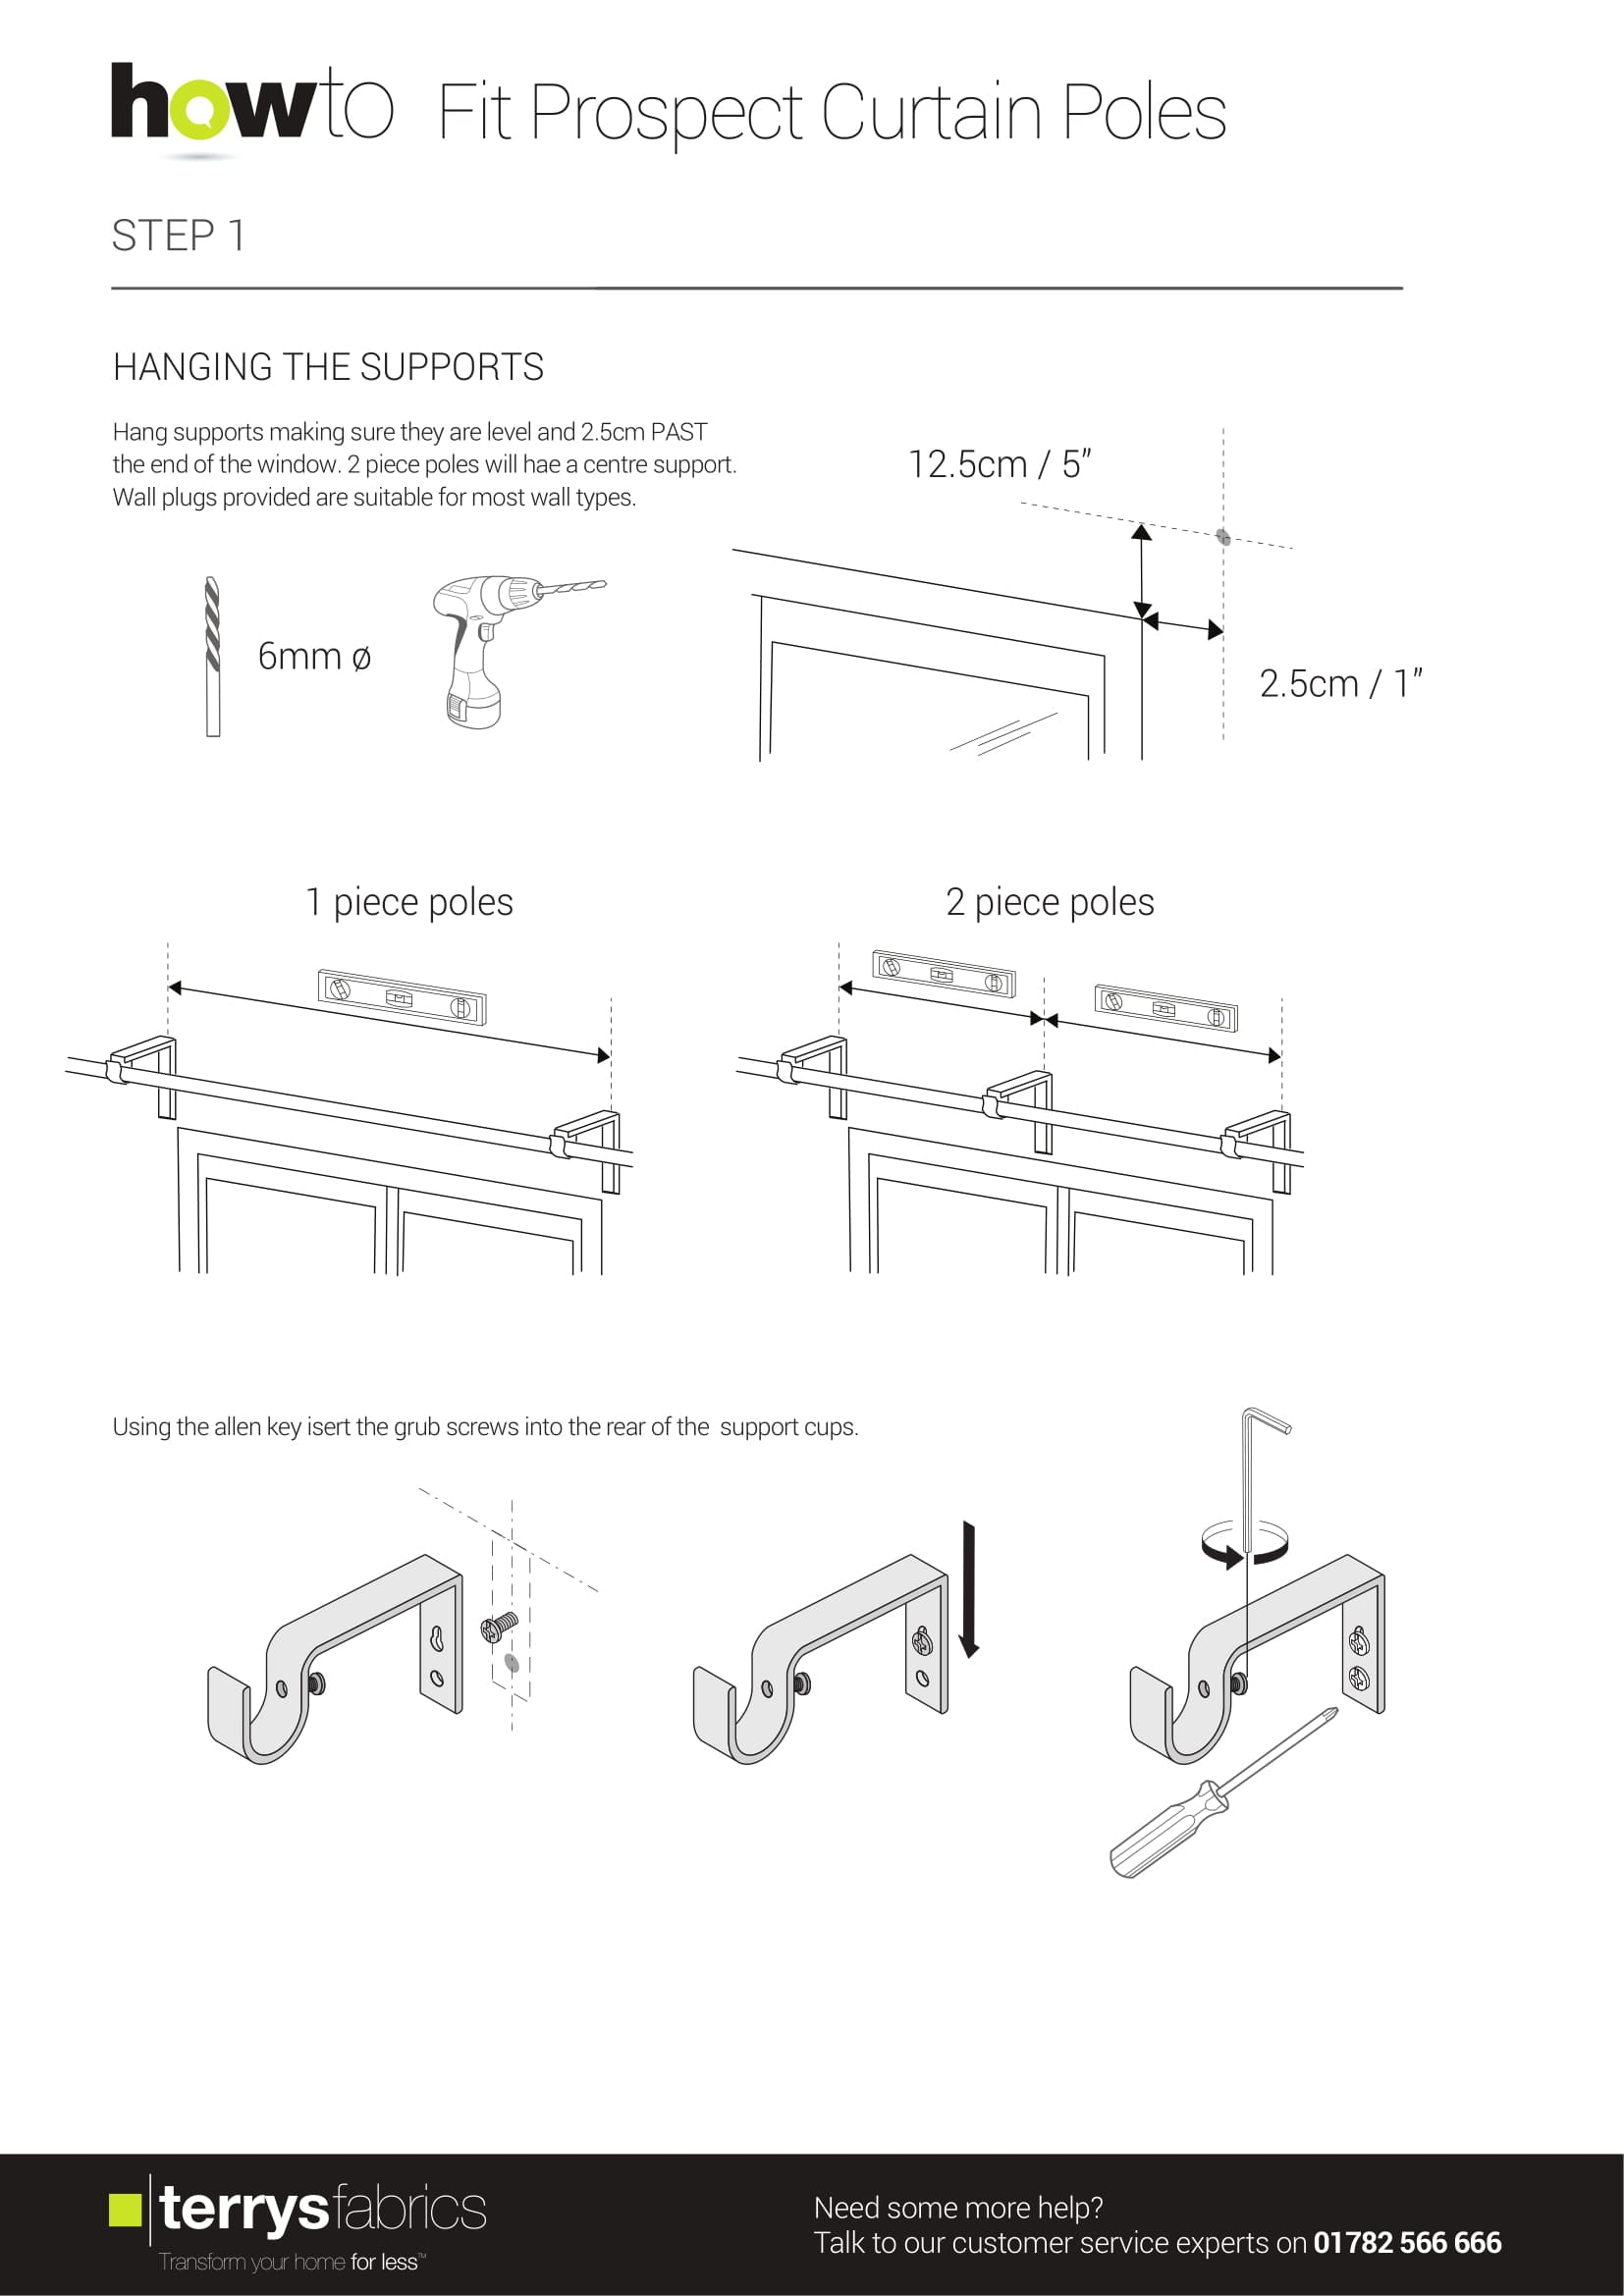 Prospect Curtain Pole Fitting Instructions